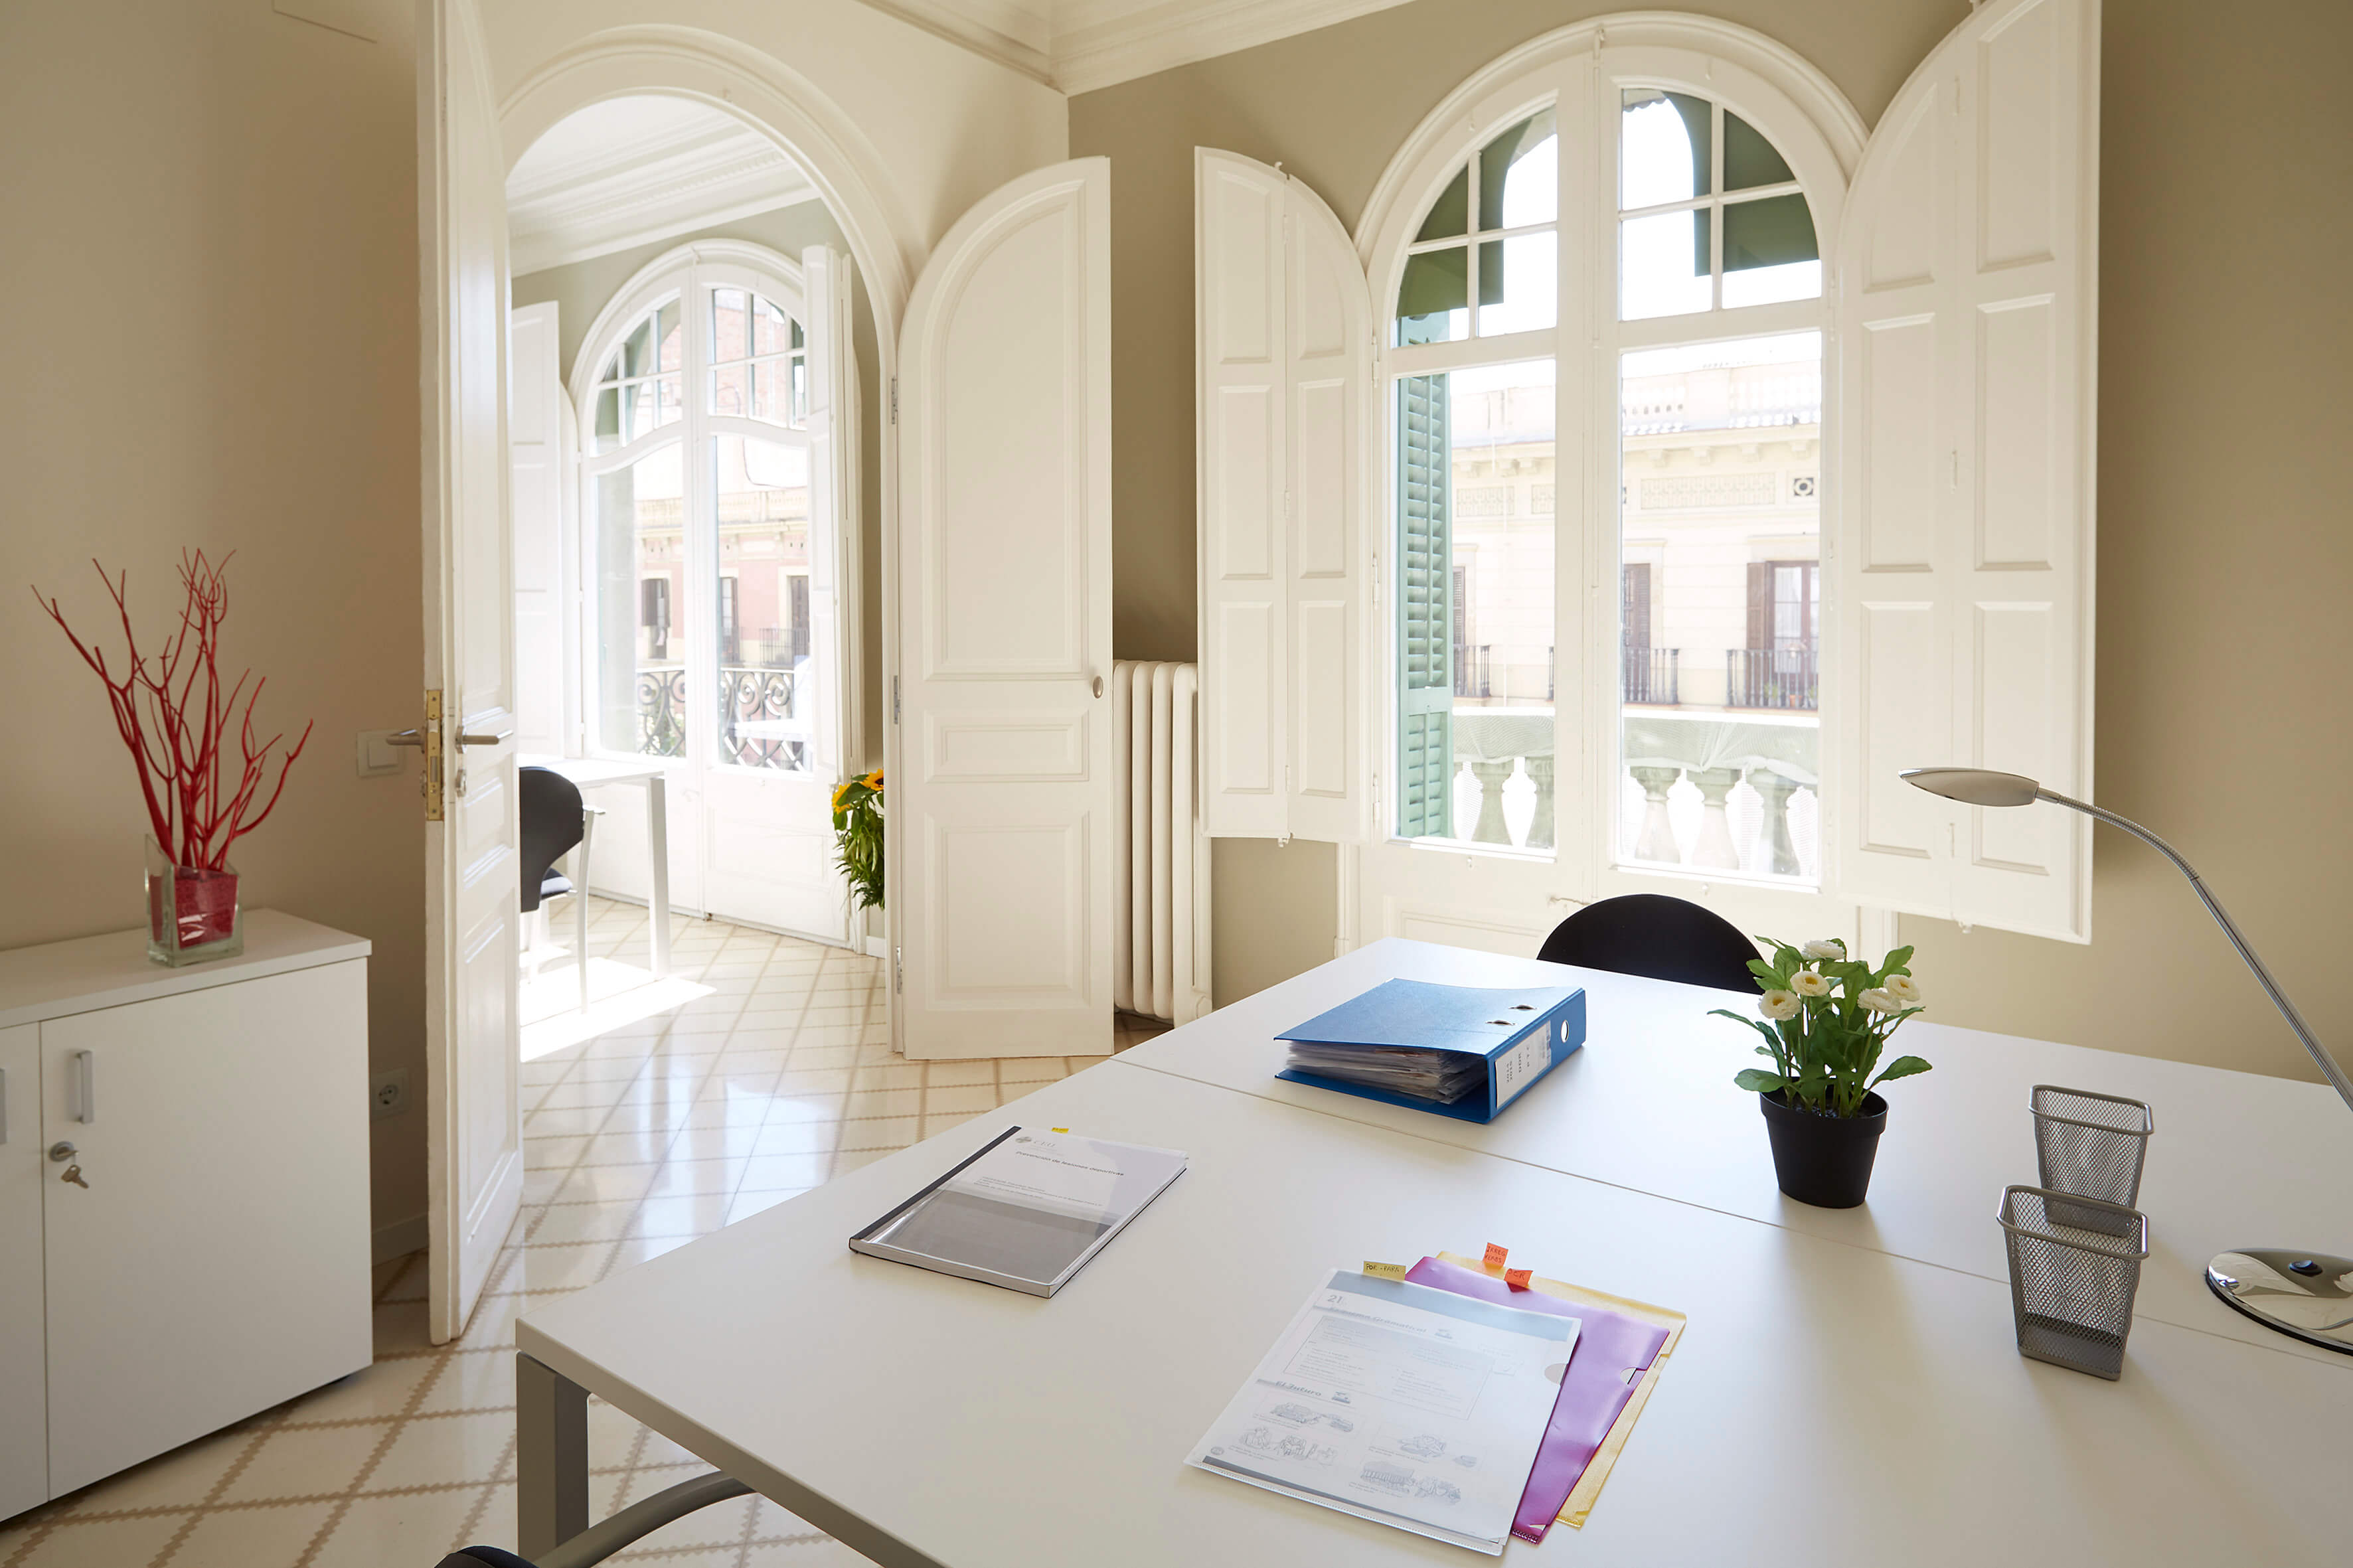 Barcelona Virtual Office Space - Comfortable Commons Area